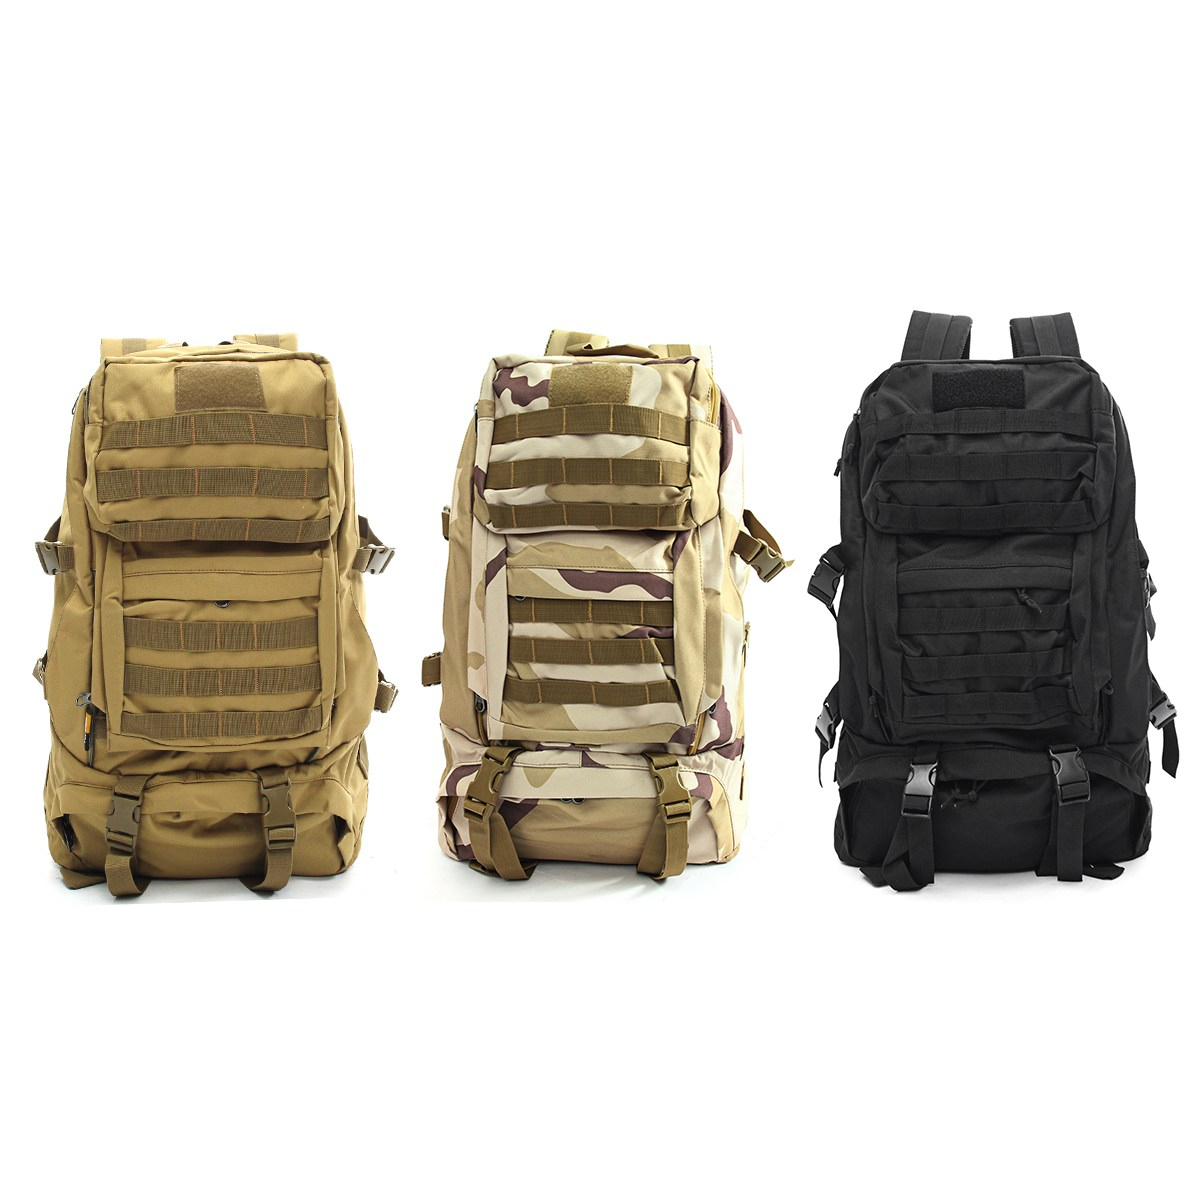 50L Canvas Outdoor Backpack Waterproof Hiking Camping Travel Military Rucksack Unisex backpack Durable Tactical shoulder Bags outdoor nylon waterproof men sports hiking climbing double shoulder bags 35l military tactical durable travel backpack rucksack